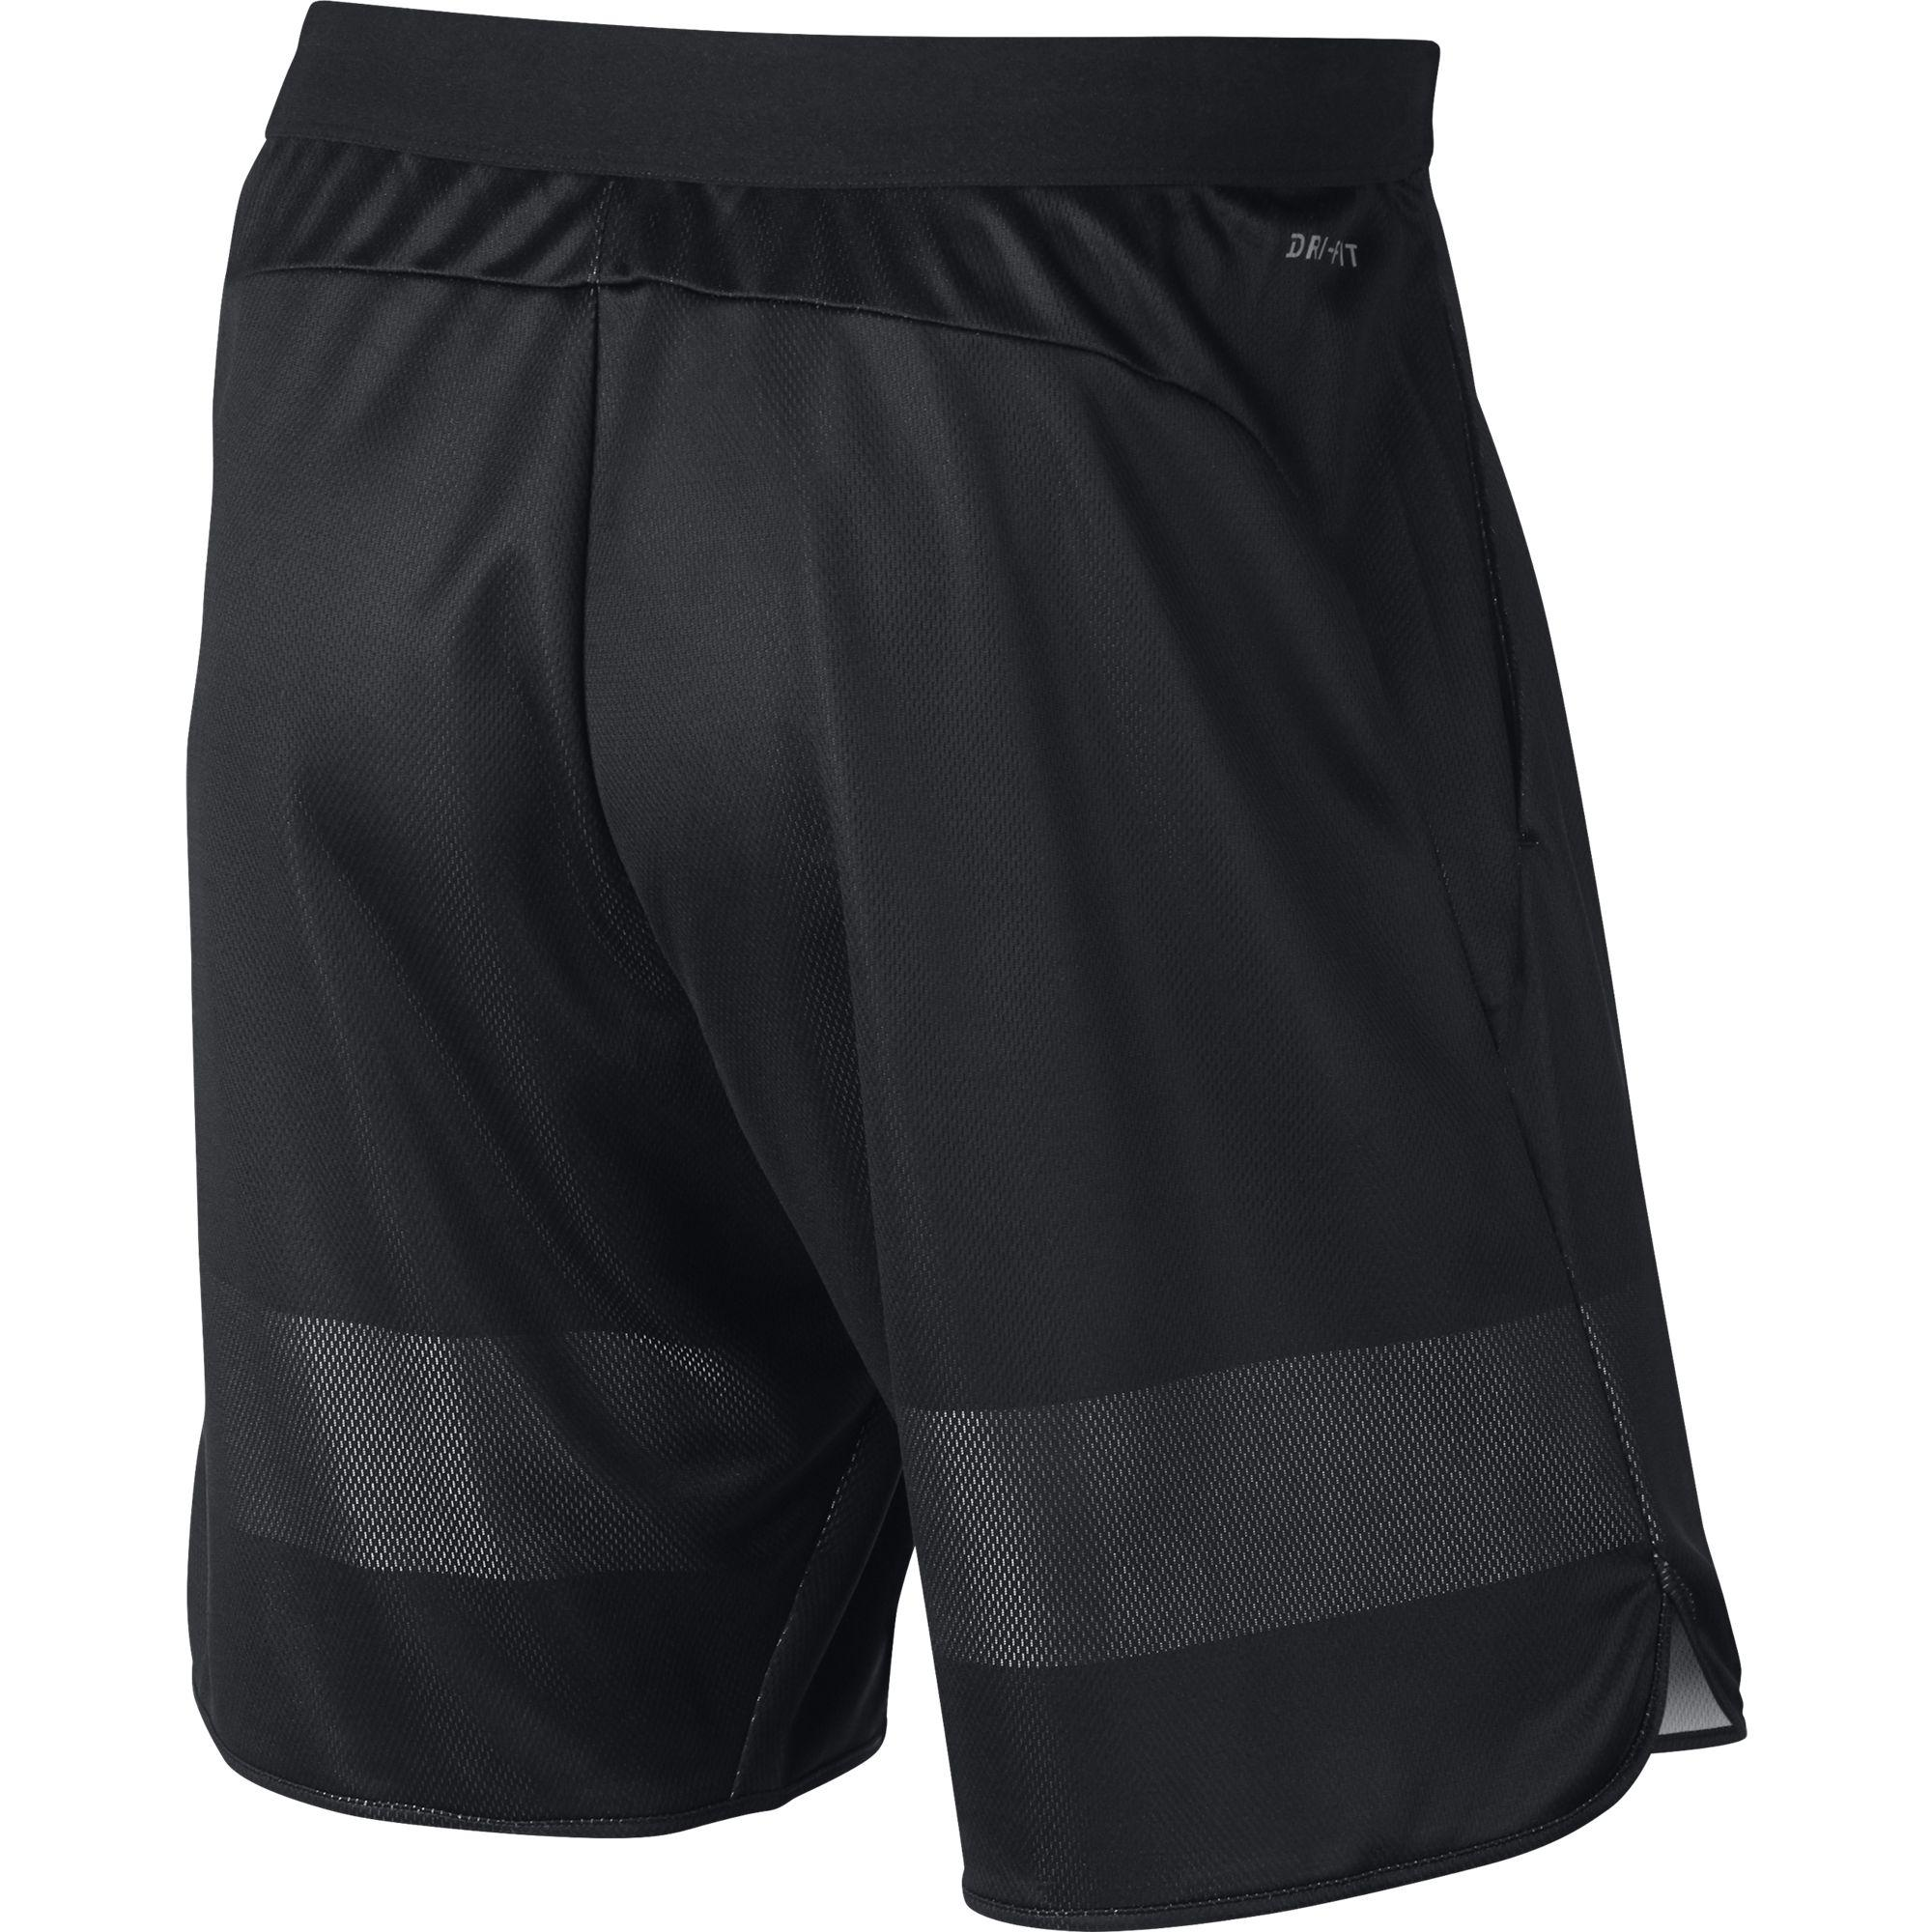 Free shipping BOTH ways on mens tennis shorts clothing, from our vast selection of styles. Fast delivery, and 24/7/ real-person service with a smile. Click or call